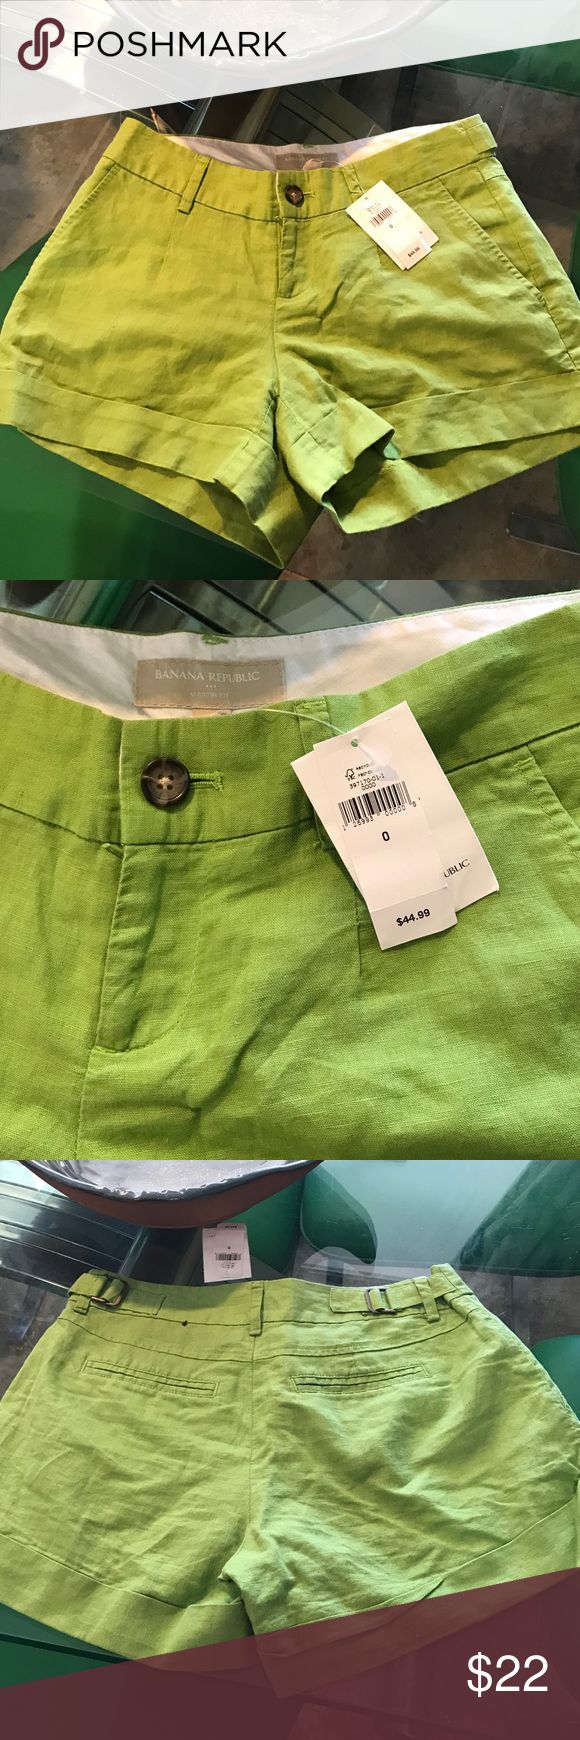 NWT Cute Shorts Size 0 Banana Republic Cute Shorts Size 0 Banana Repiblic lime green linen shorts. Zipper front with brown Button side adjusters in bronze. Two side pockets and 2 back pockets. Great price brand new! Banana Republic Shorts